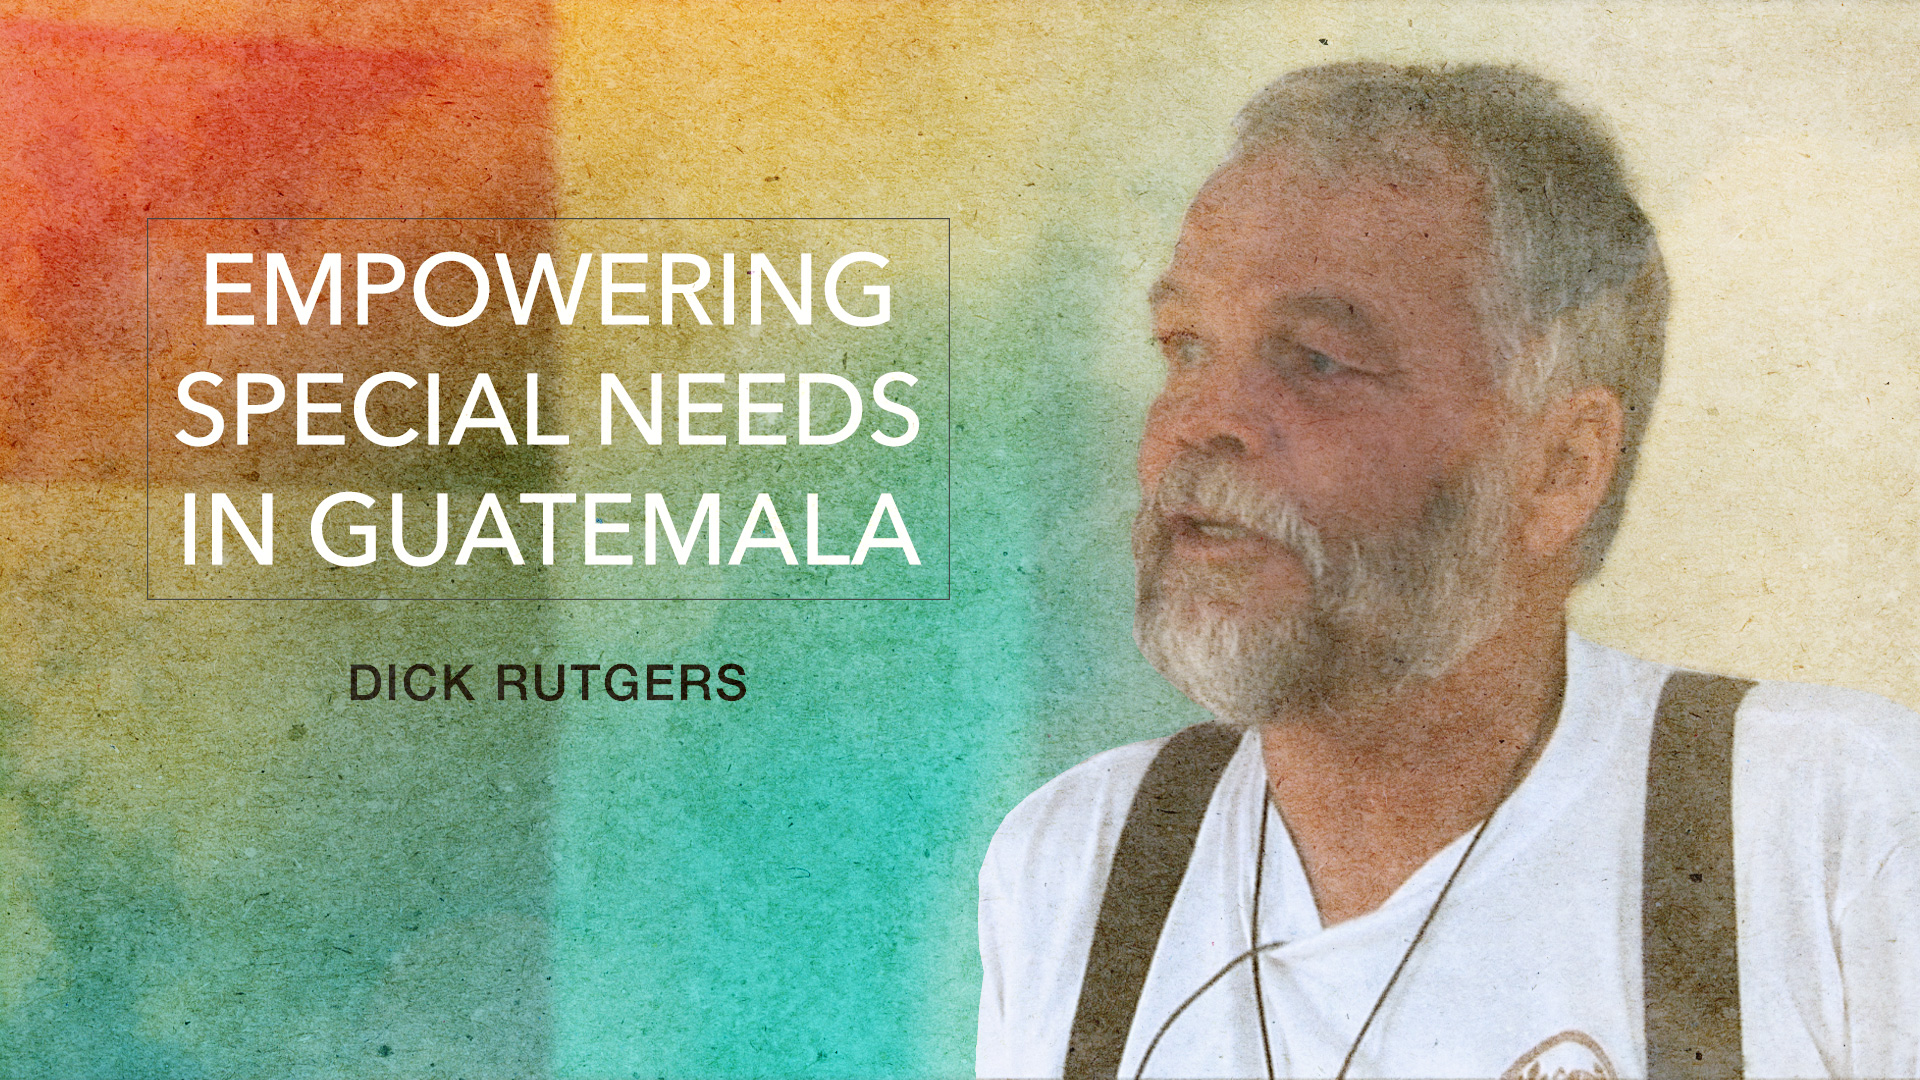 Empowering Special Needs in Guatemala